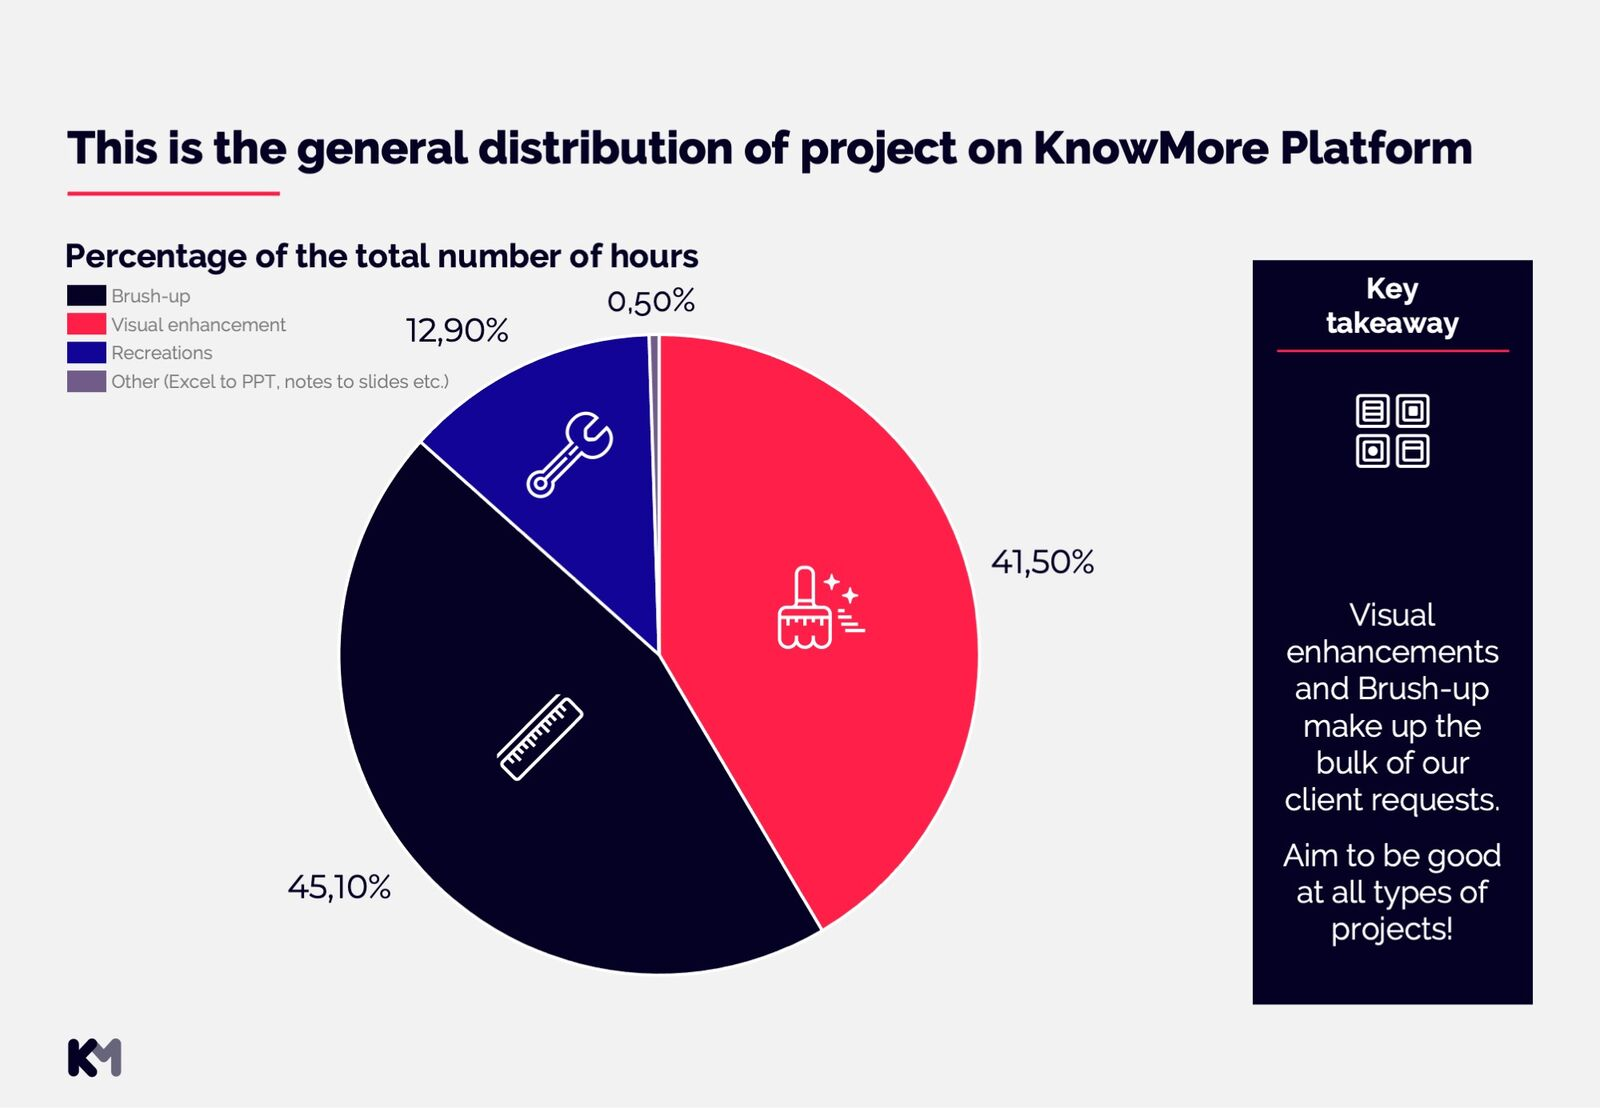 Distribution of project types